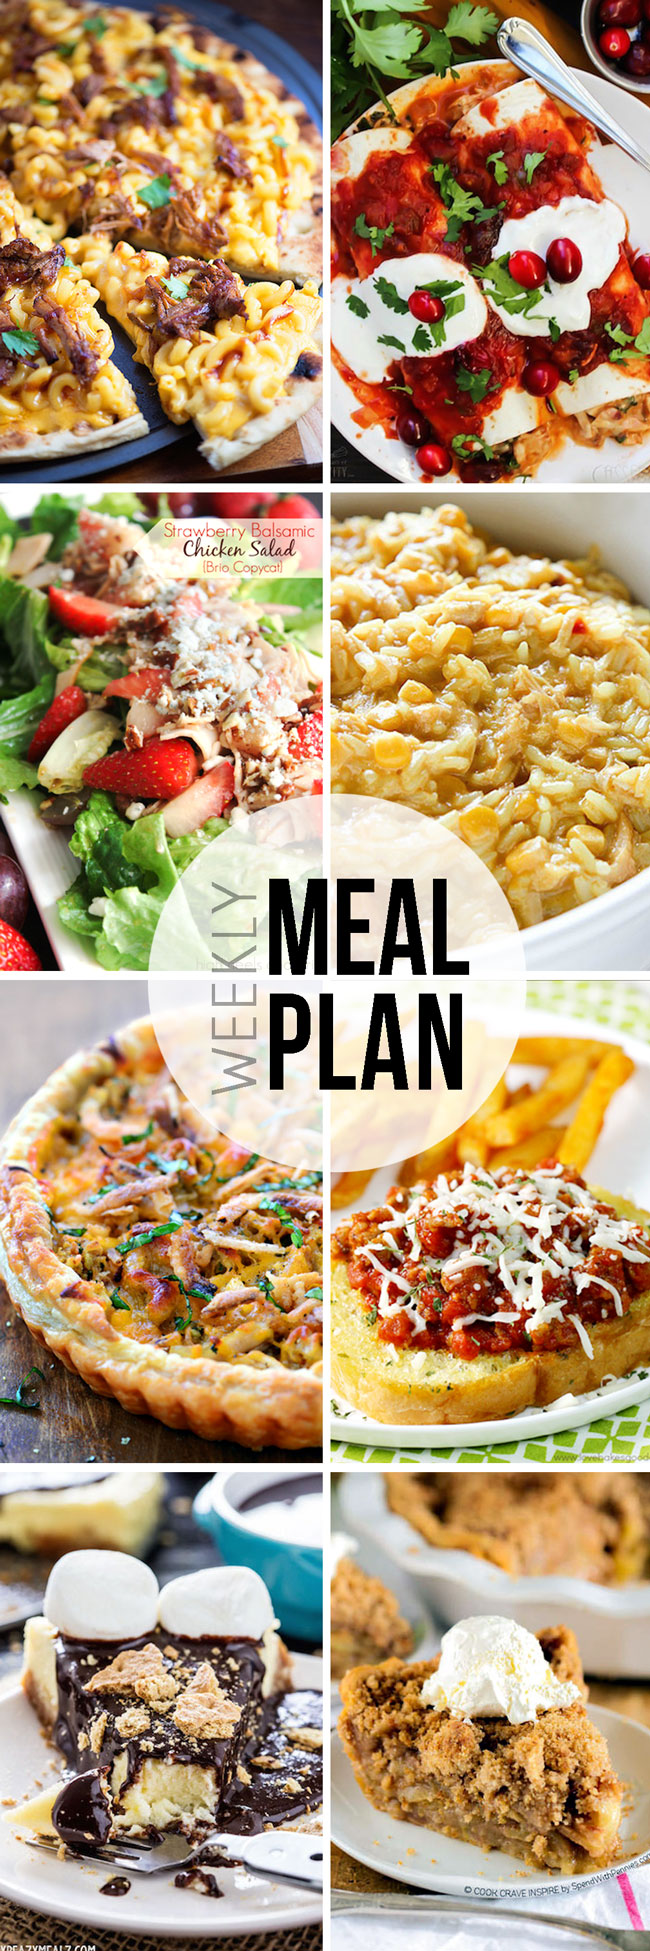 Take the hassle out of meal planning with this weekly menu